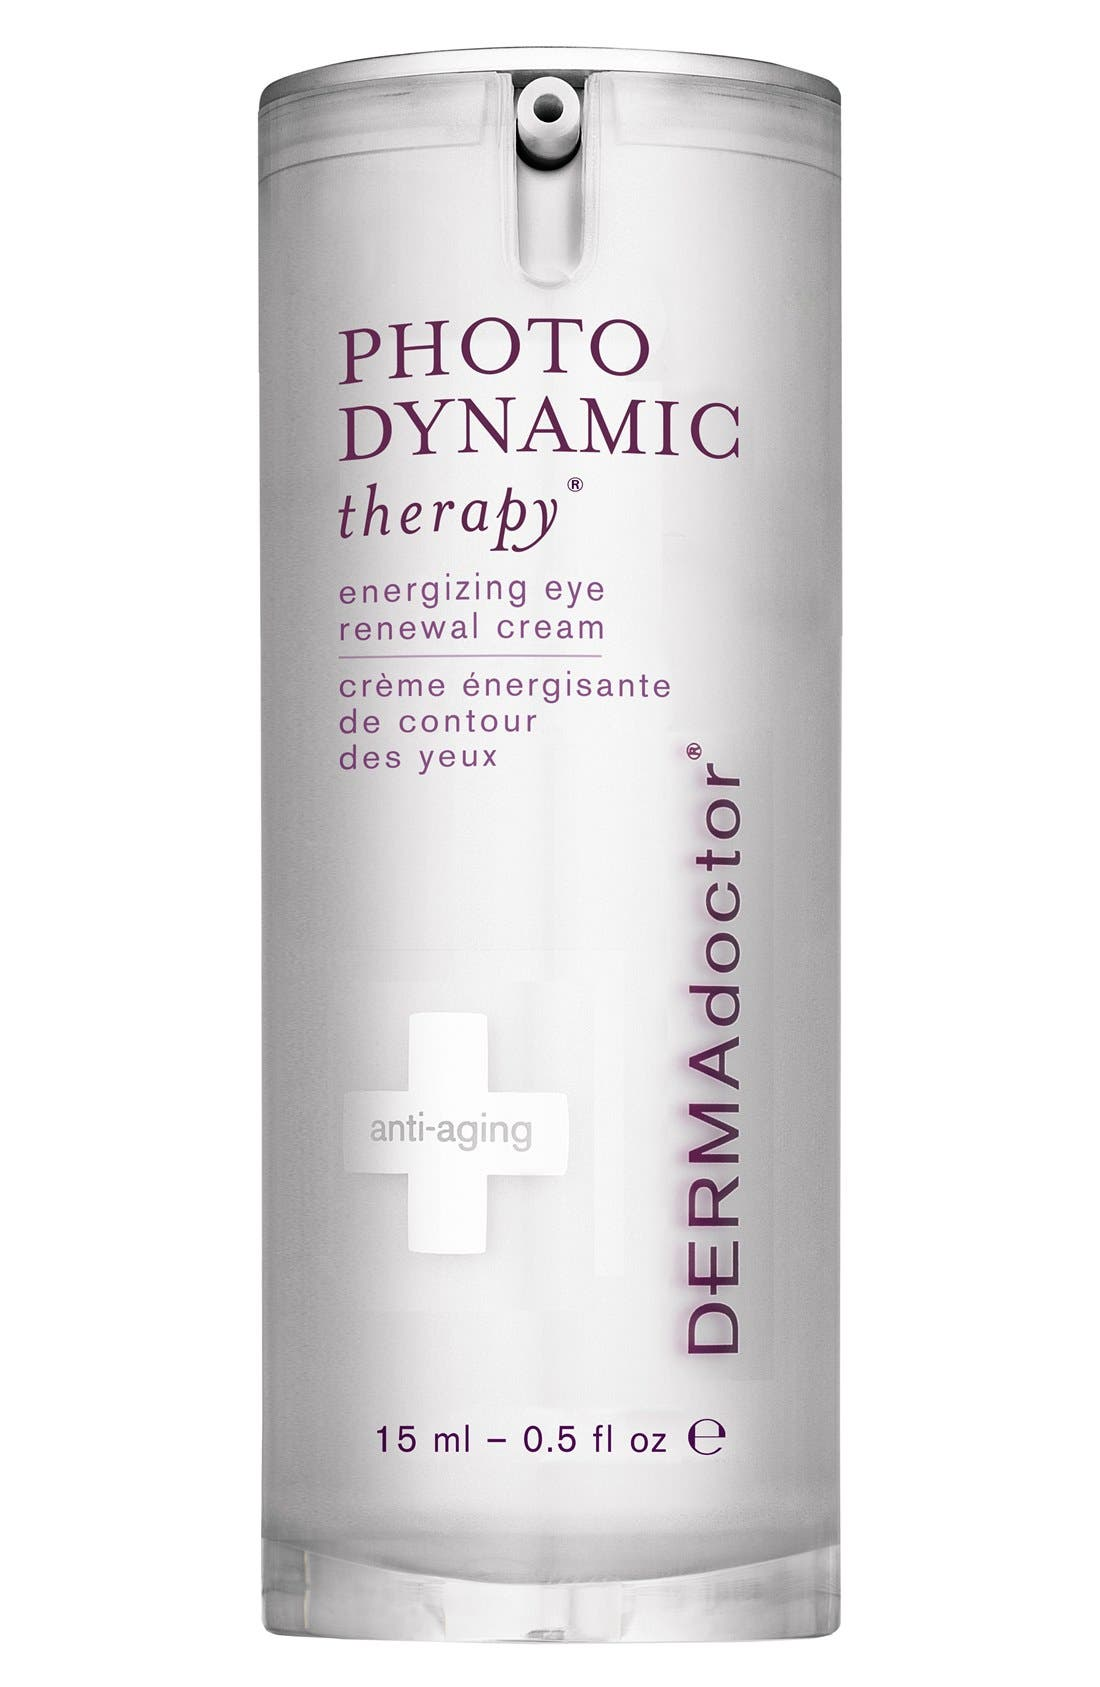 DERMAdoctor® 'PHOTODYNAMIC therapy®' Energizing Eye Renewal Cream